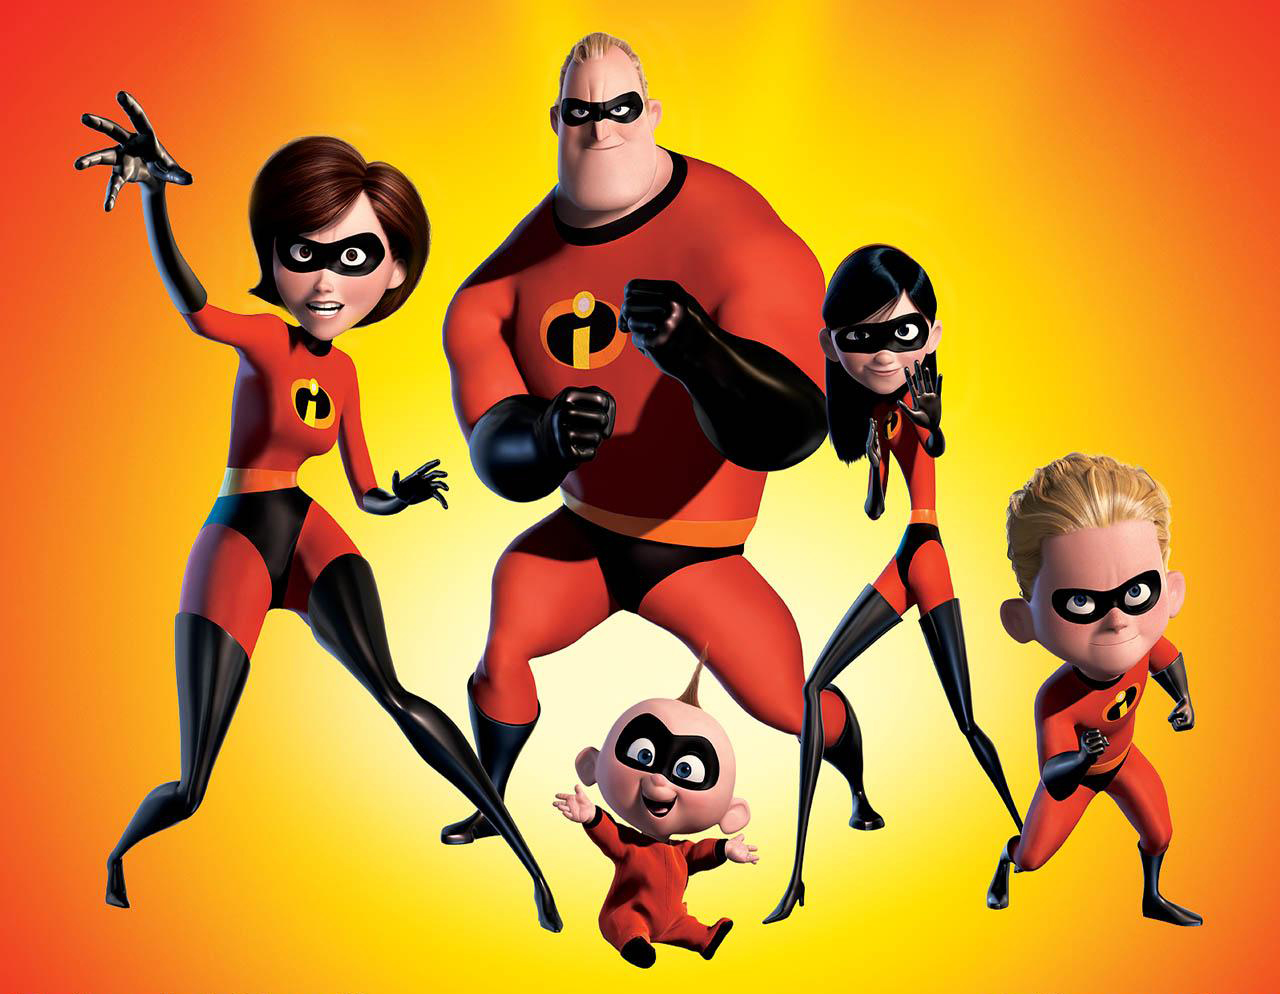 https://i1.wp.com/www.epicdash.com/wp-content/uploads/2014/03/fun-facts-about-the-incredibles.jpg